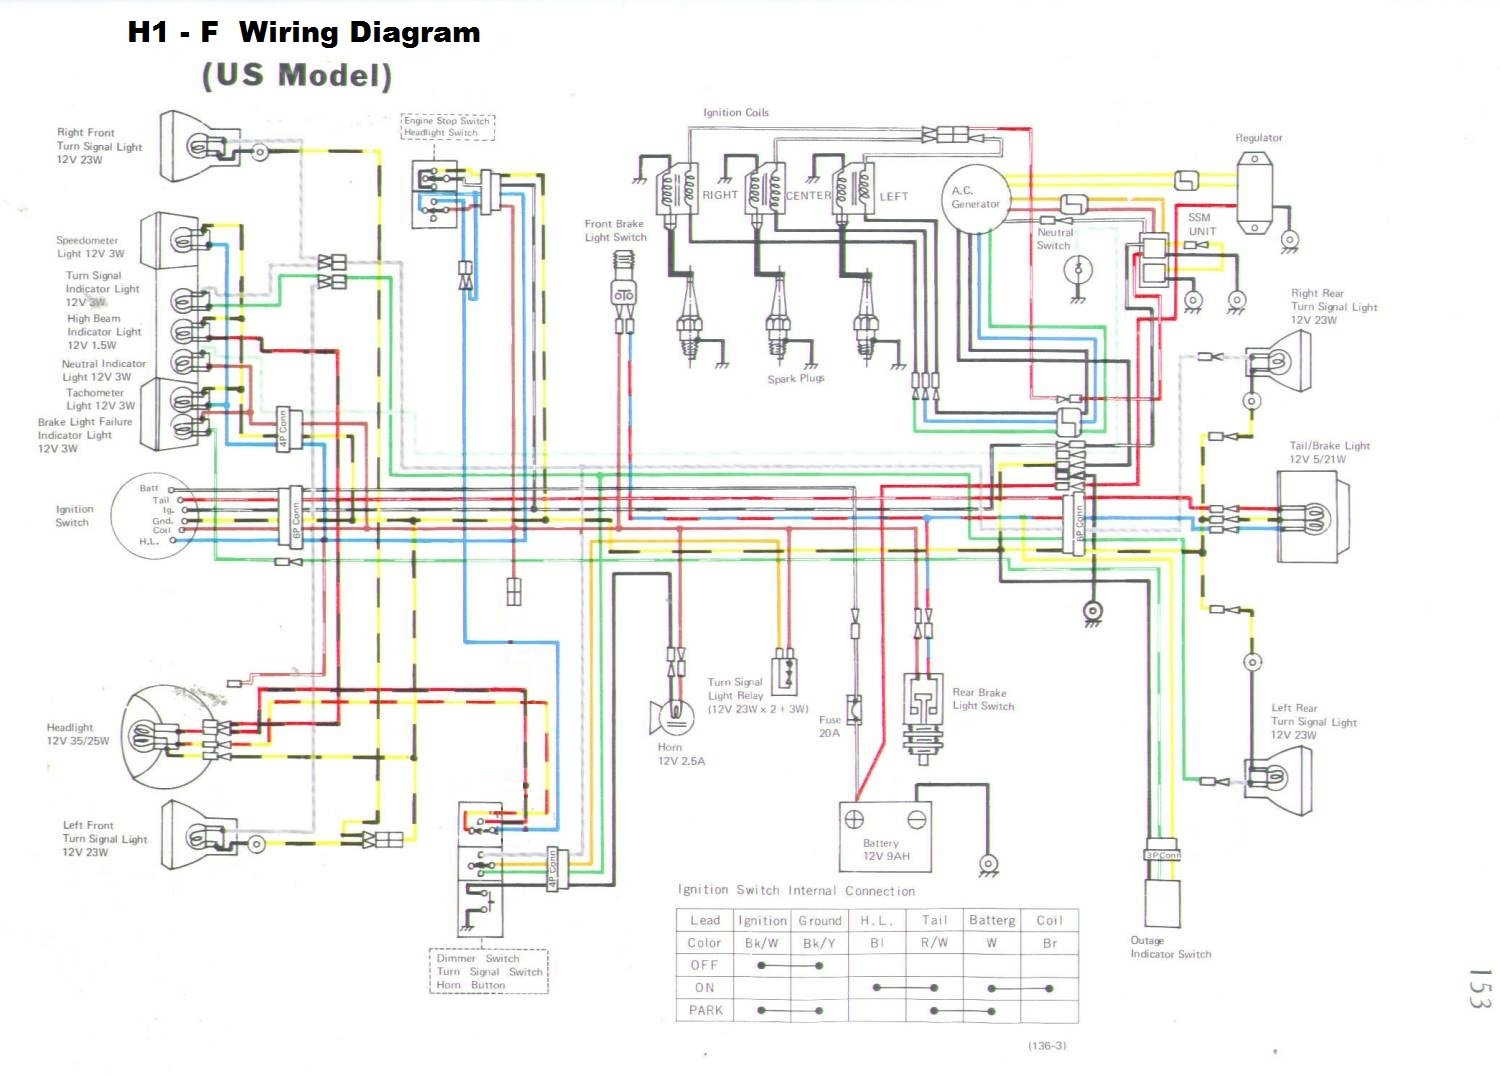 kawasaki h1 wiring diagram - wiring diagram page mass-owner-a -  mass-owner-a.granballodicomo.it  granballodicomo.it